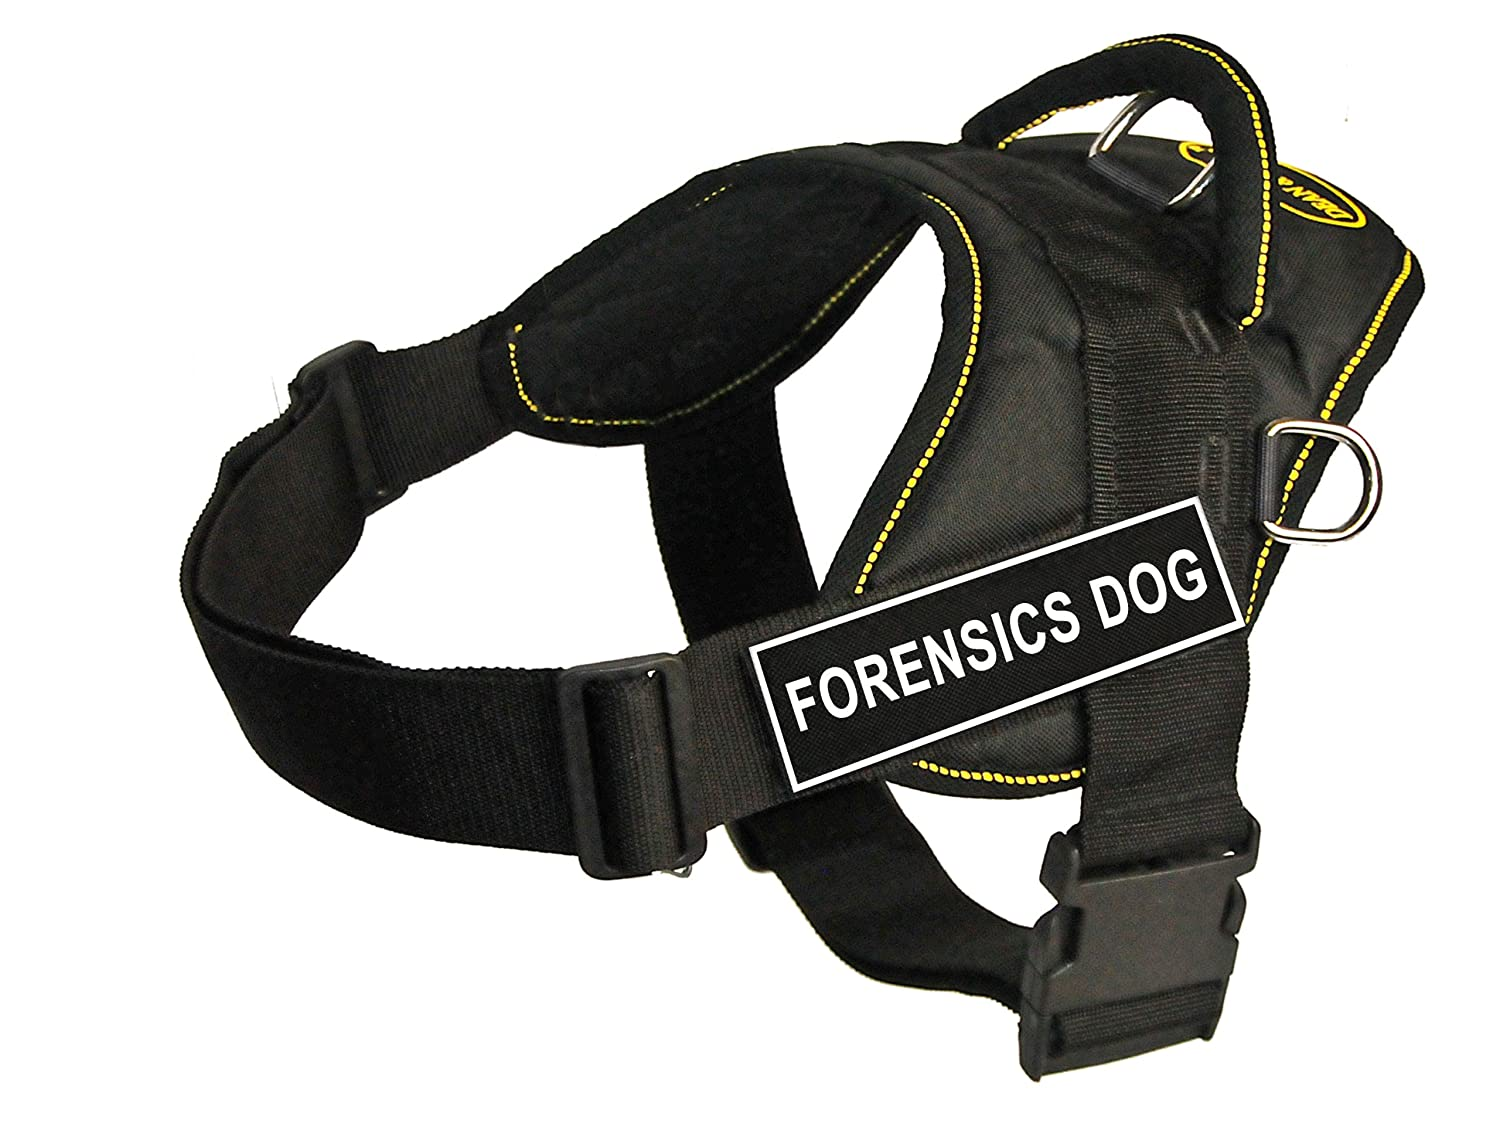 Dean & Tyler Fun Works 22-Inch to 27-Inch Pet Harness, Small, Forensics Dog, Black with Yellow Trim